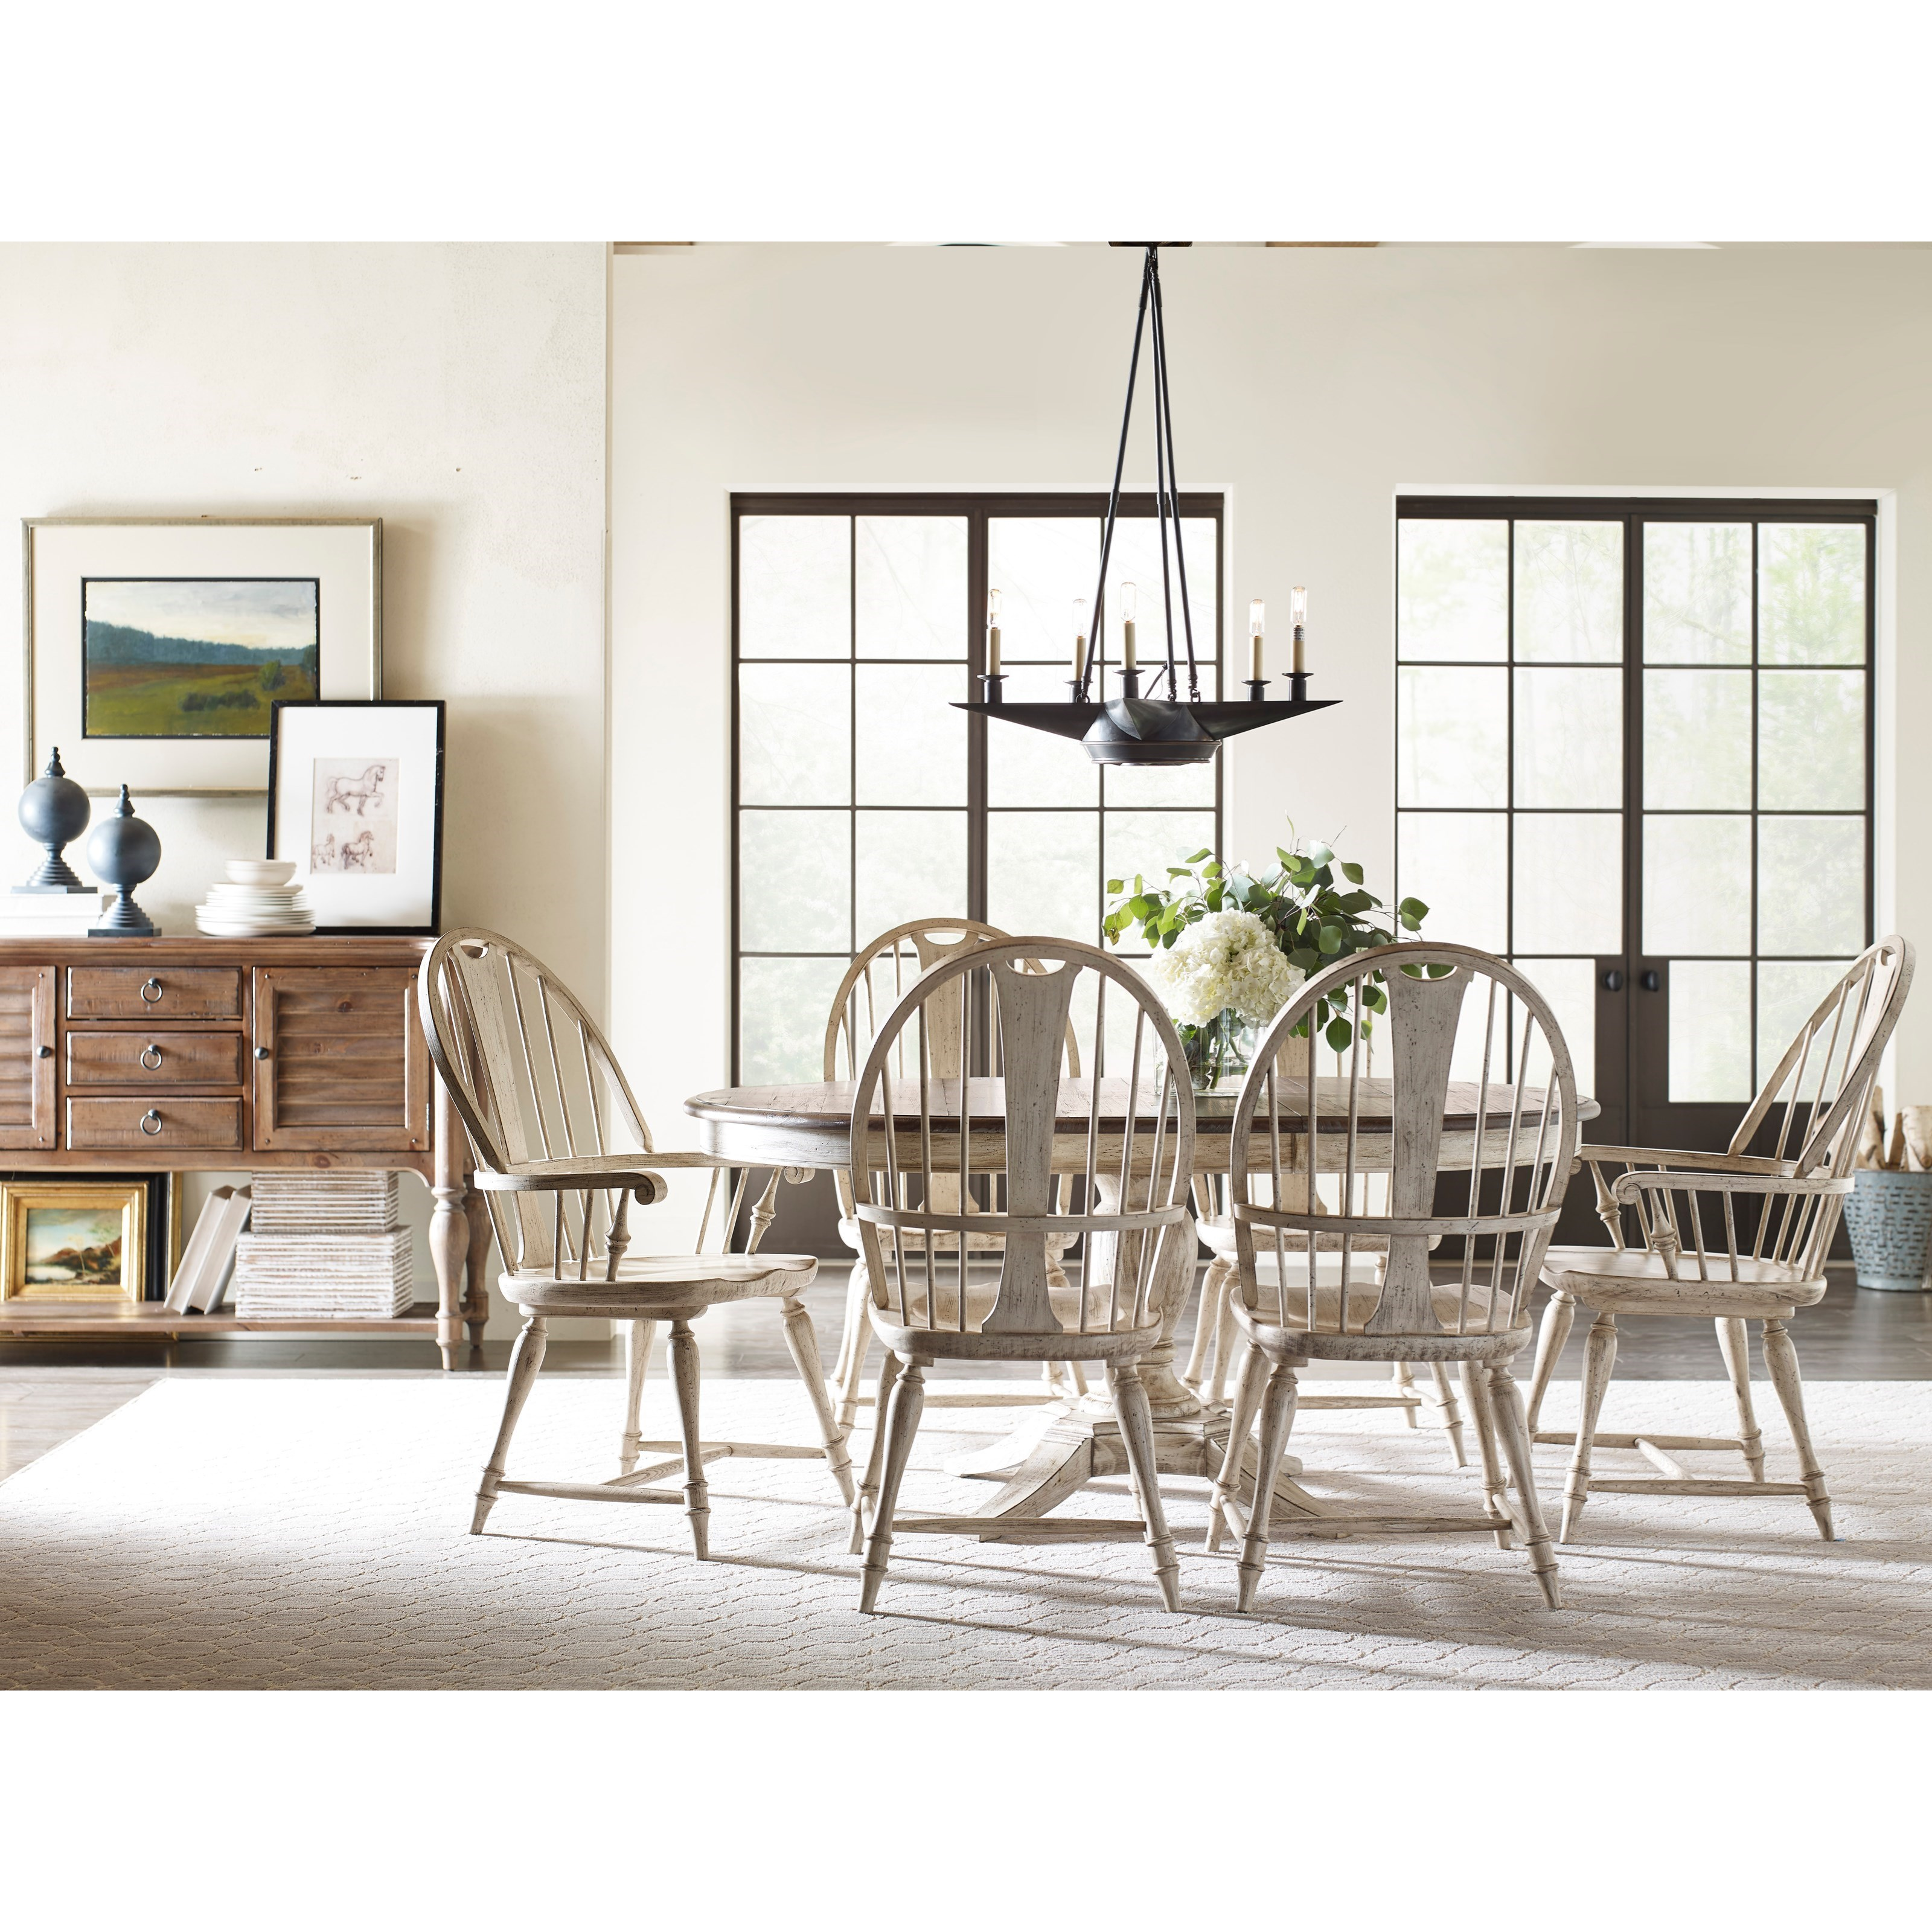 Kincaid Furniture Weatherford Formal Dining Room Group   Item Number: 75 Dining  Room Group 7